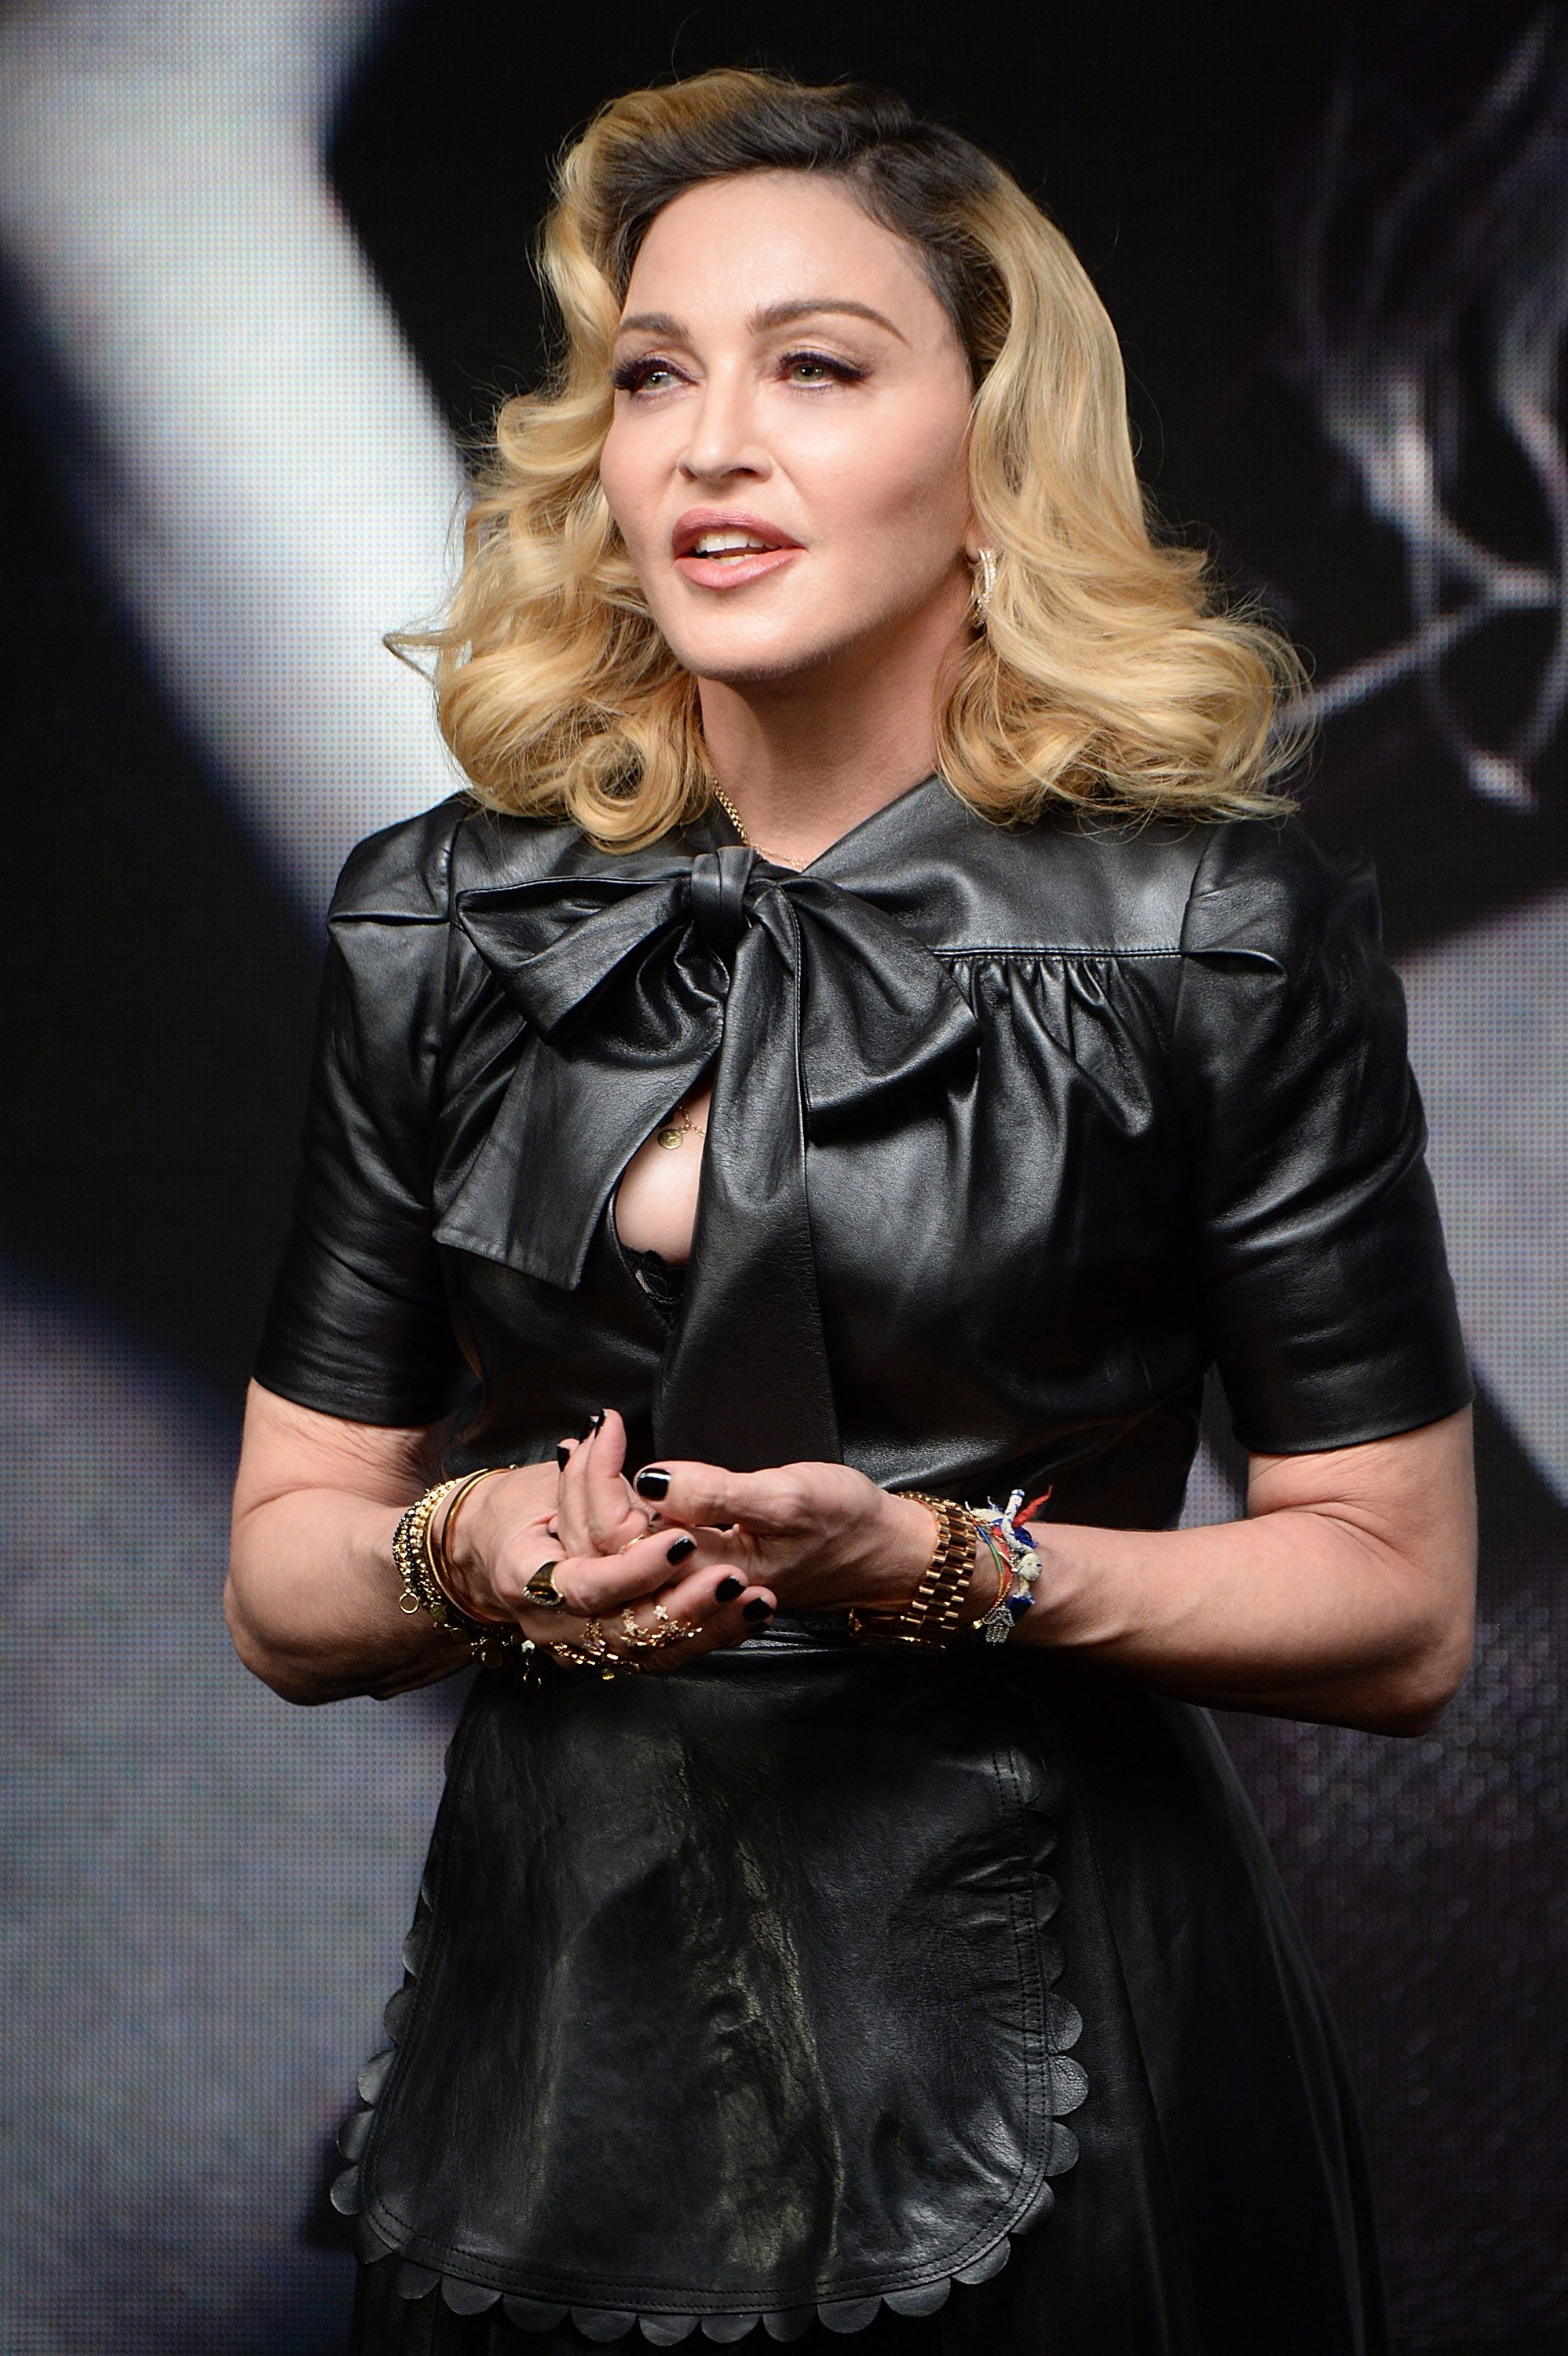 Madonna launches the MDNA SKIN collection at Ludlow House on September 26, 2017, in New York City | Photo: Kevin Mazur/Getty Images